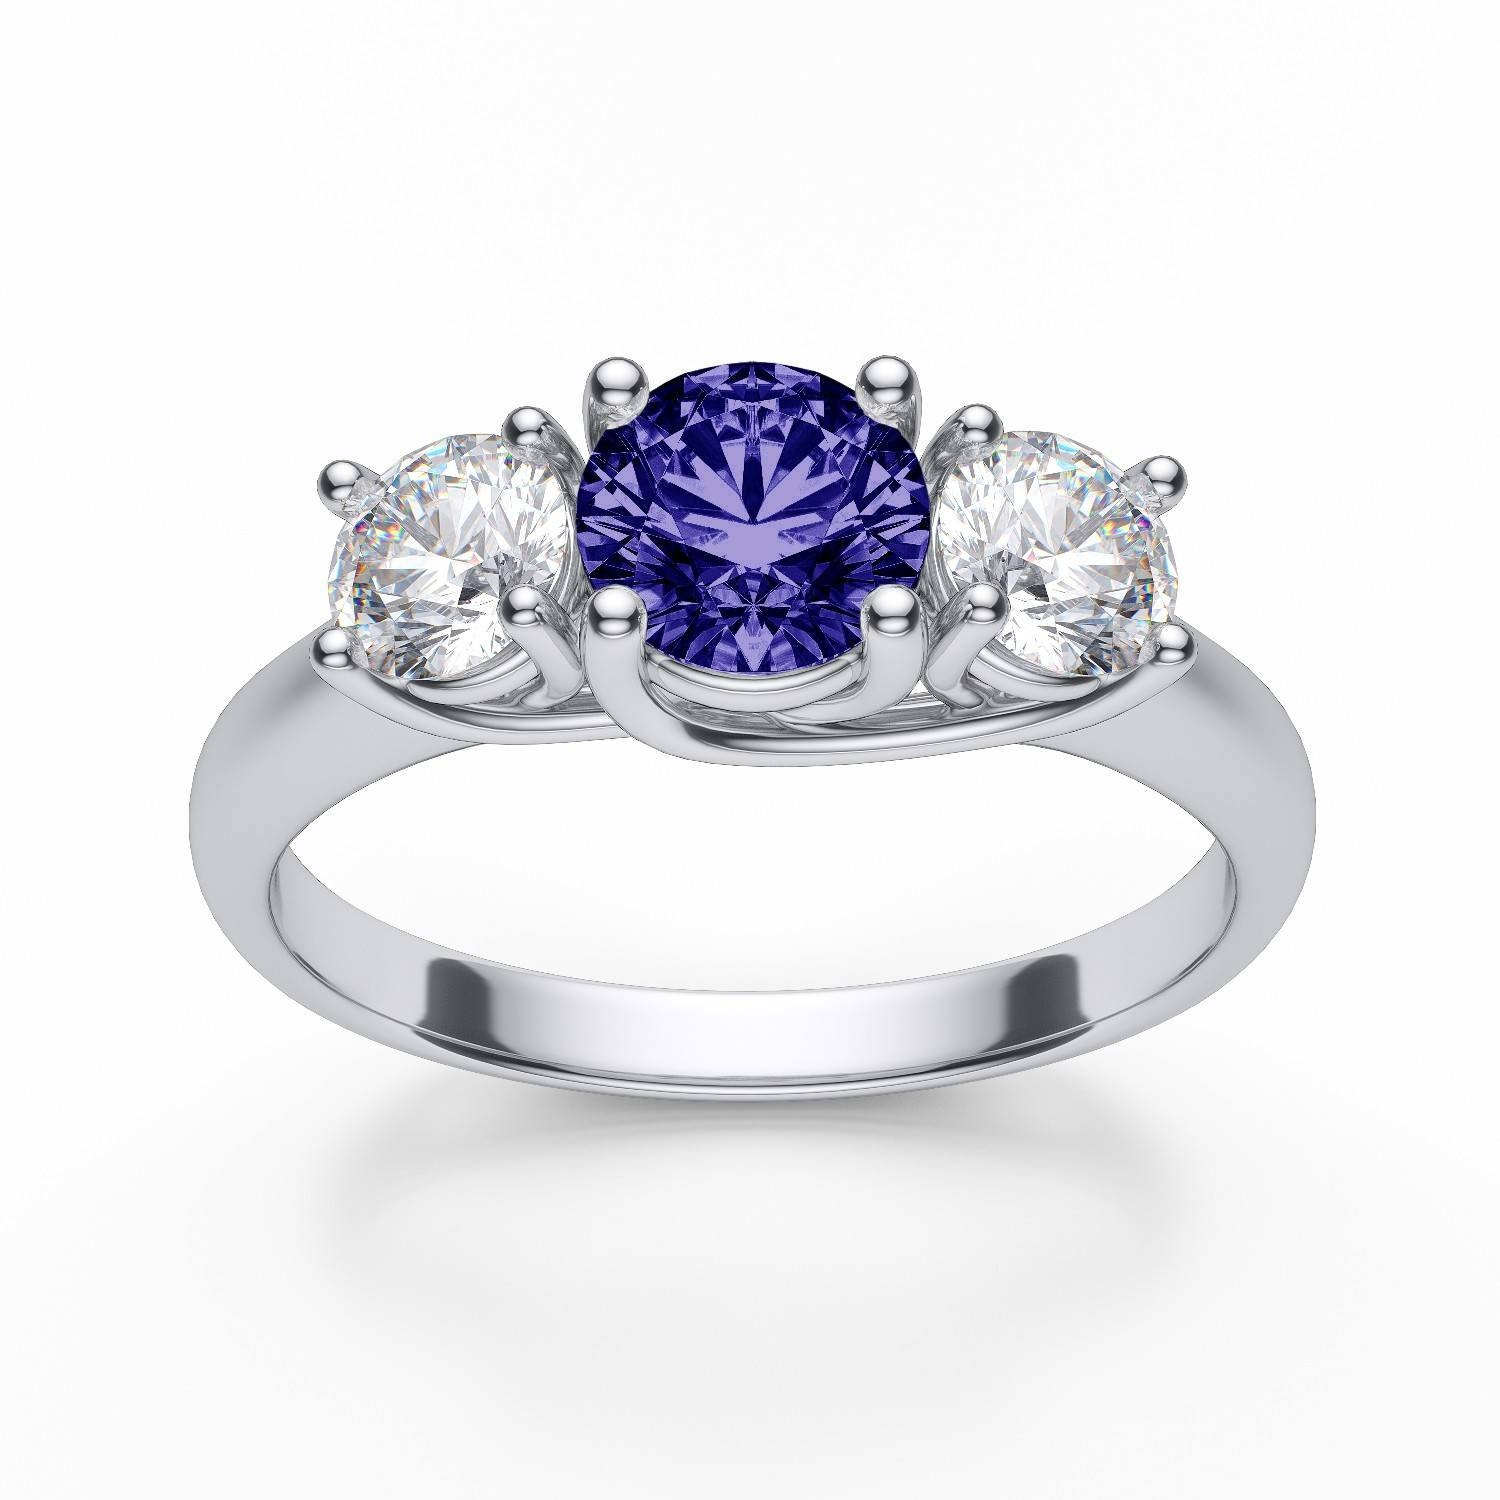 5Mm Prong Set Tanzanite And Diamond Engagement Ring In 14K White Gold Pertaining To Tanzanite Engagement Rings With White Gold (View 3 of 15)